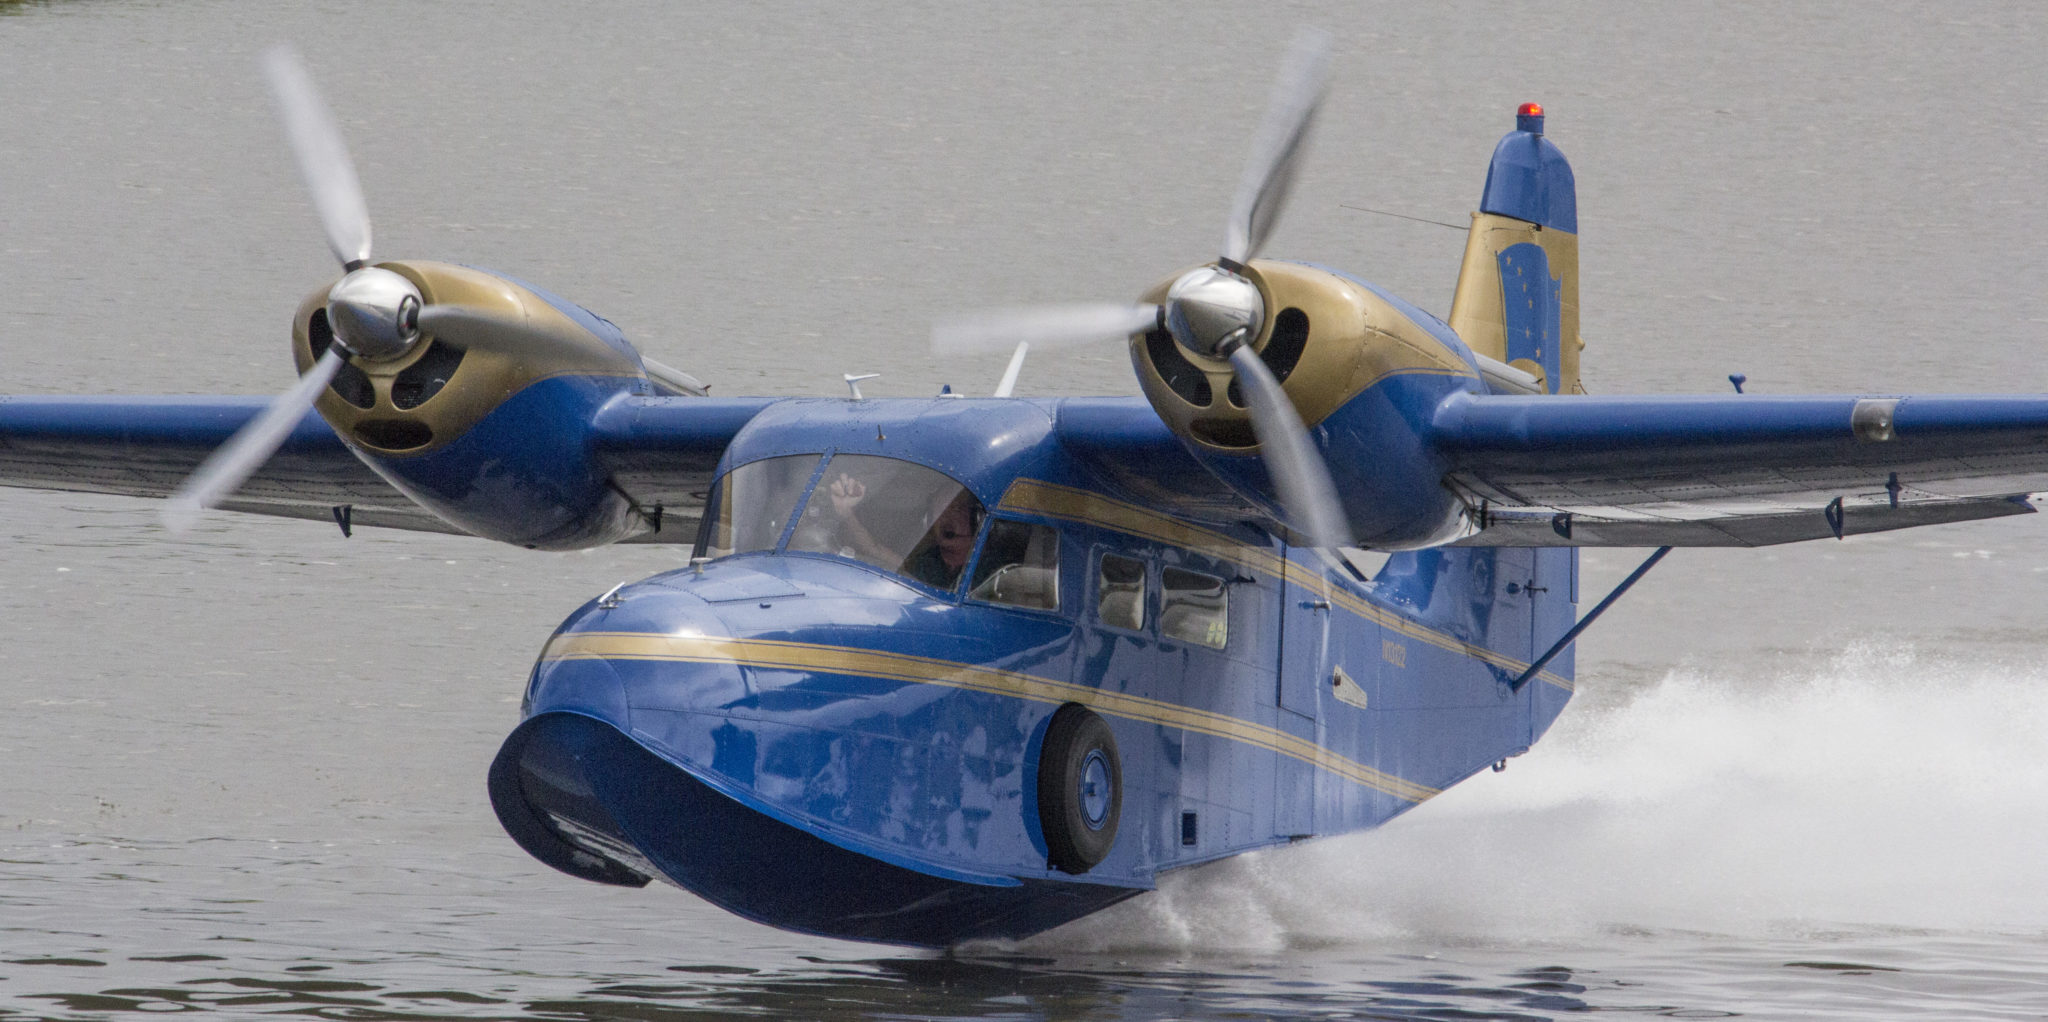 Alaskafoto image of a GRumman Widgeon